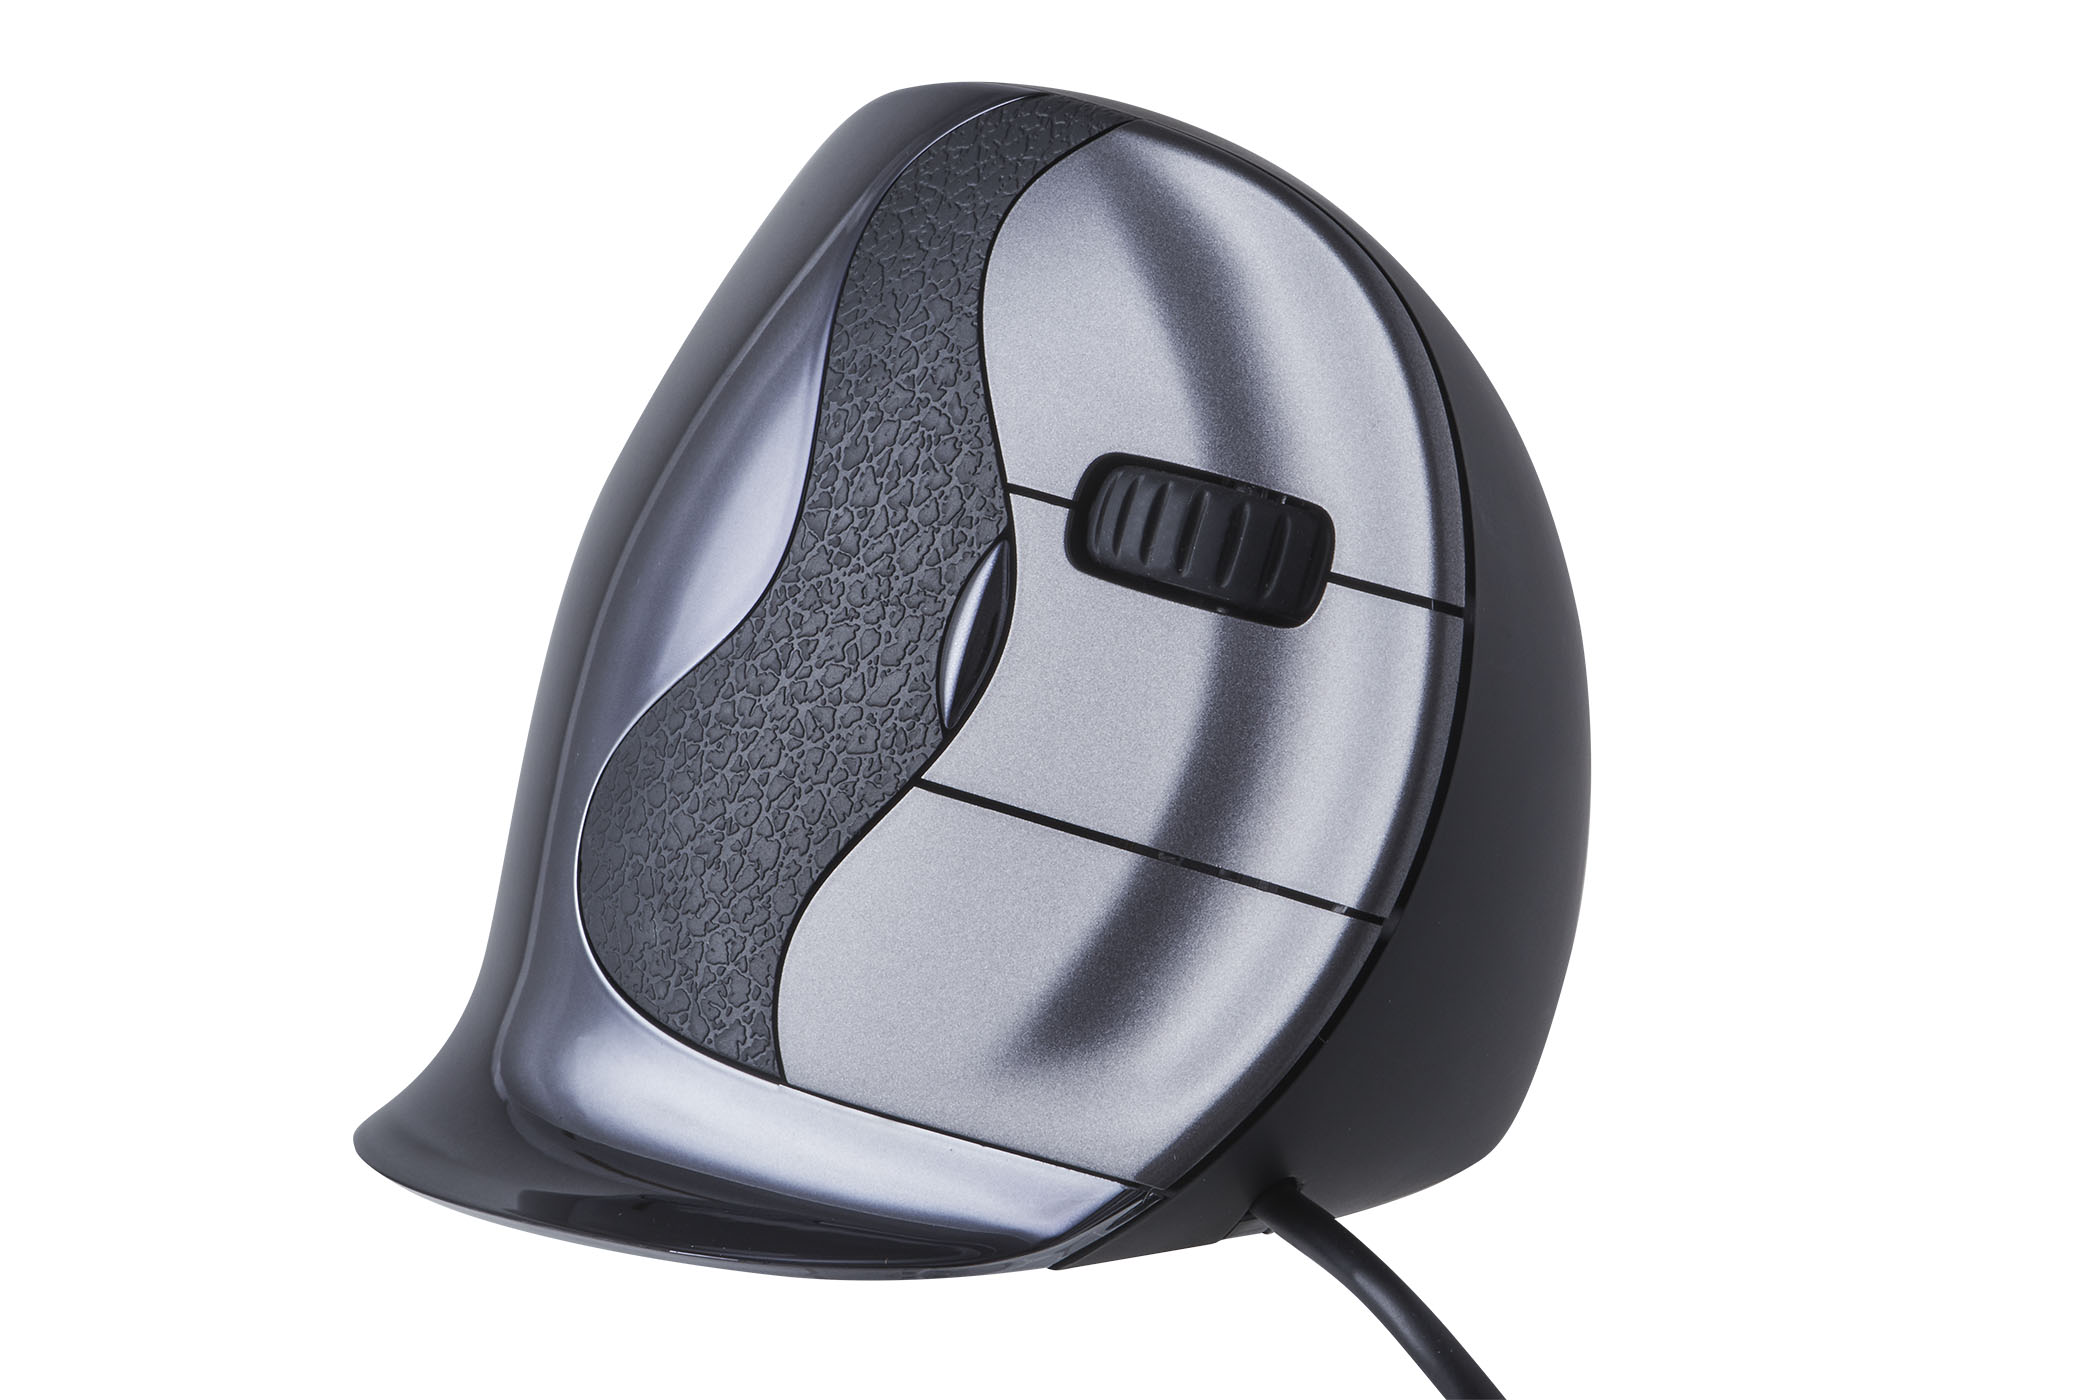 Evoluent D Mouse